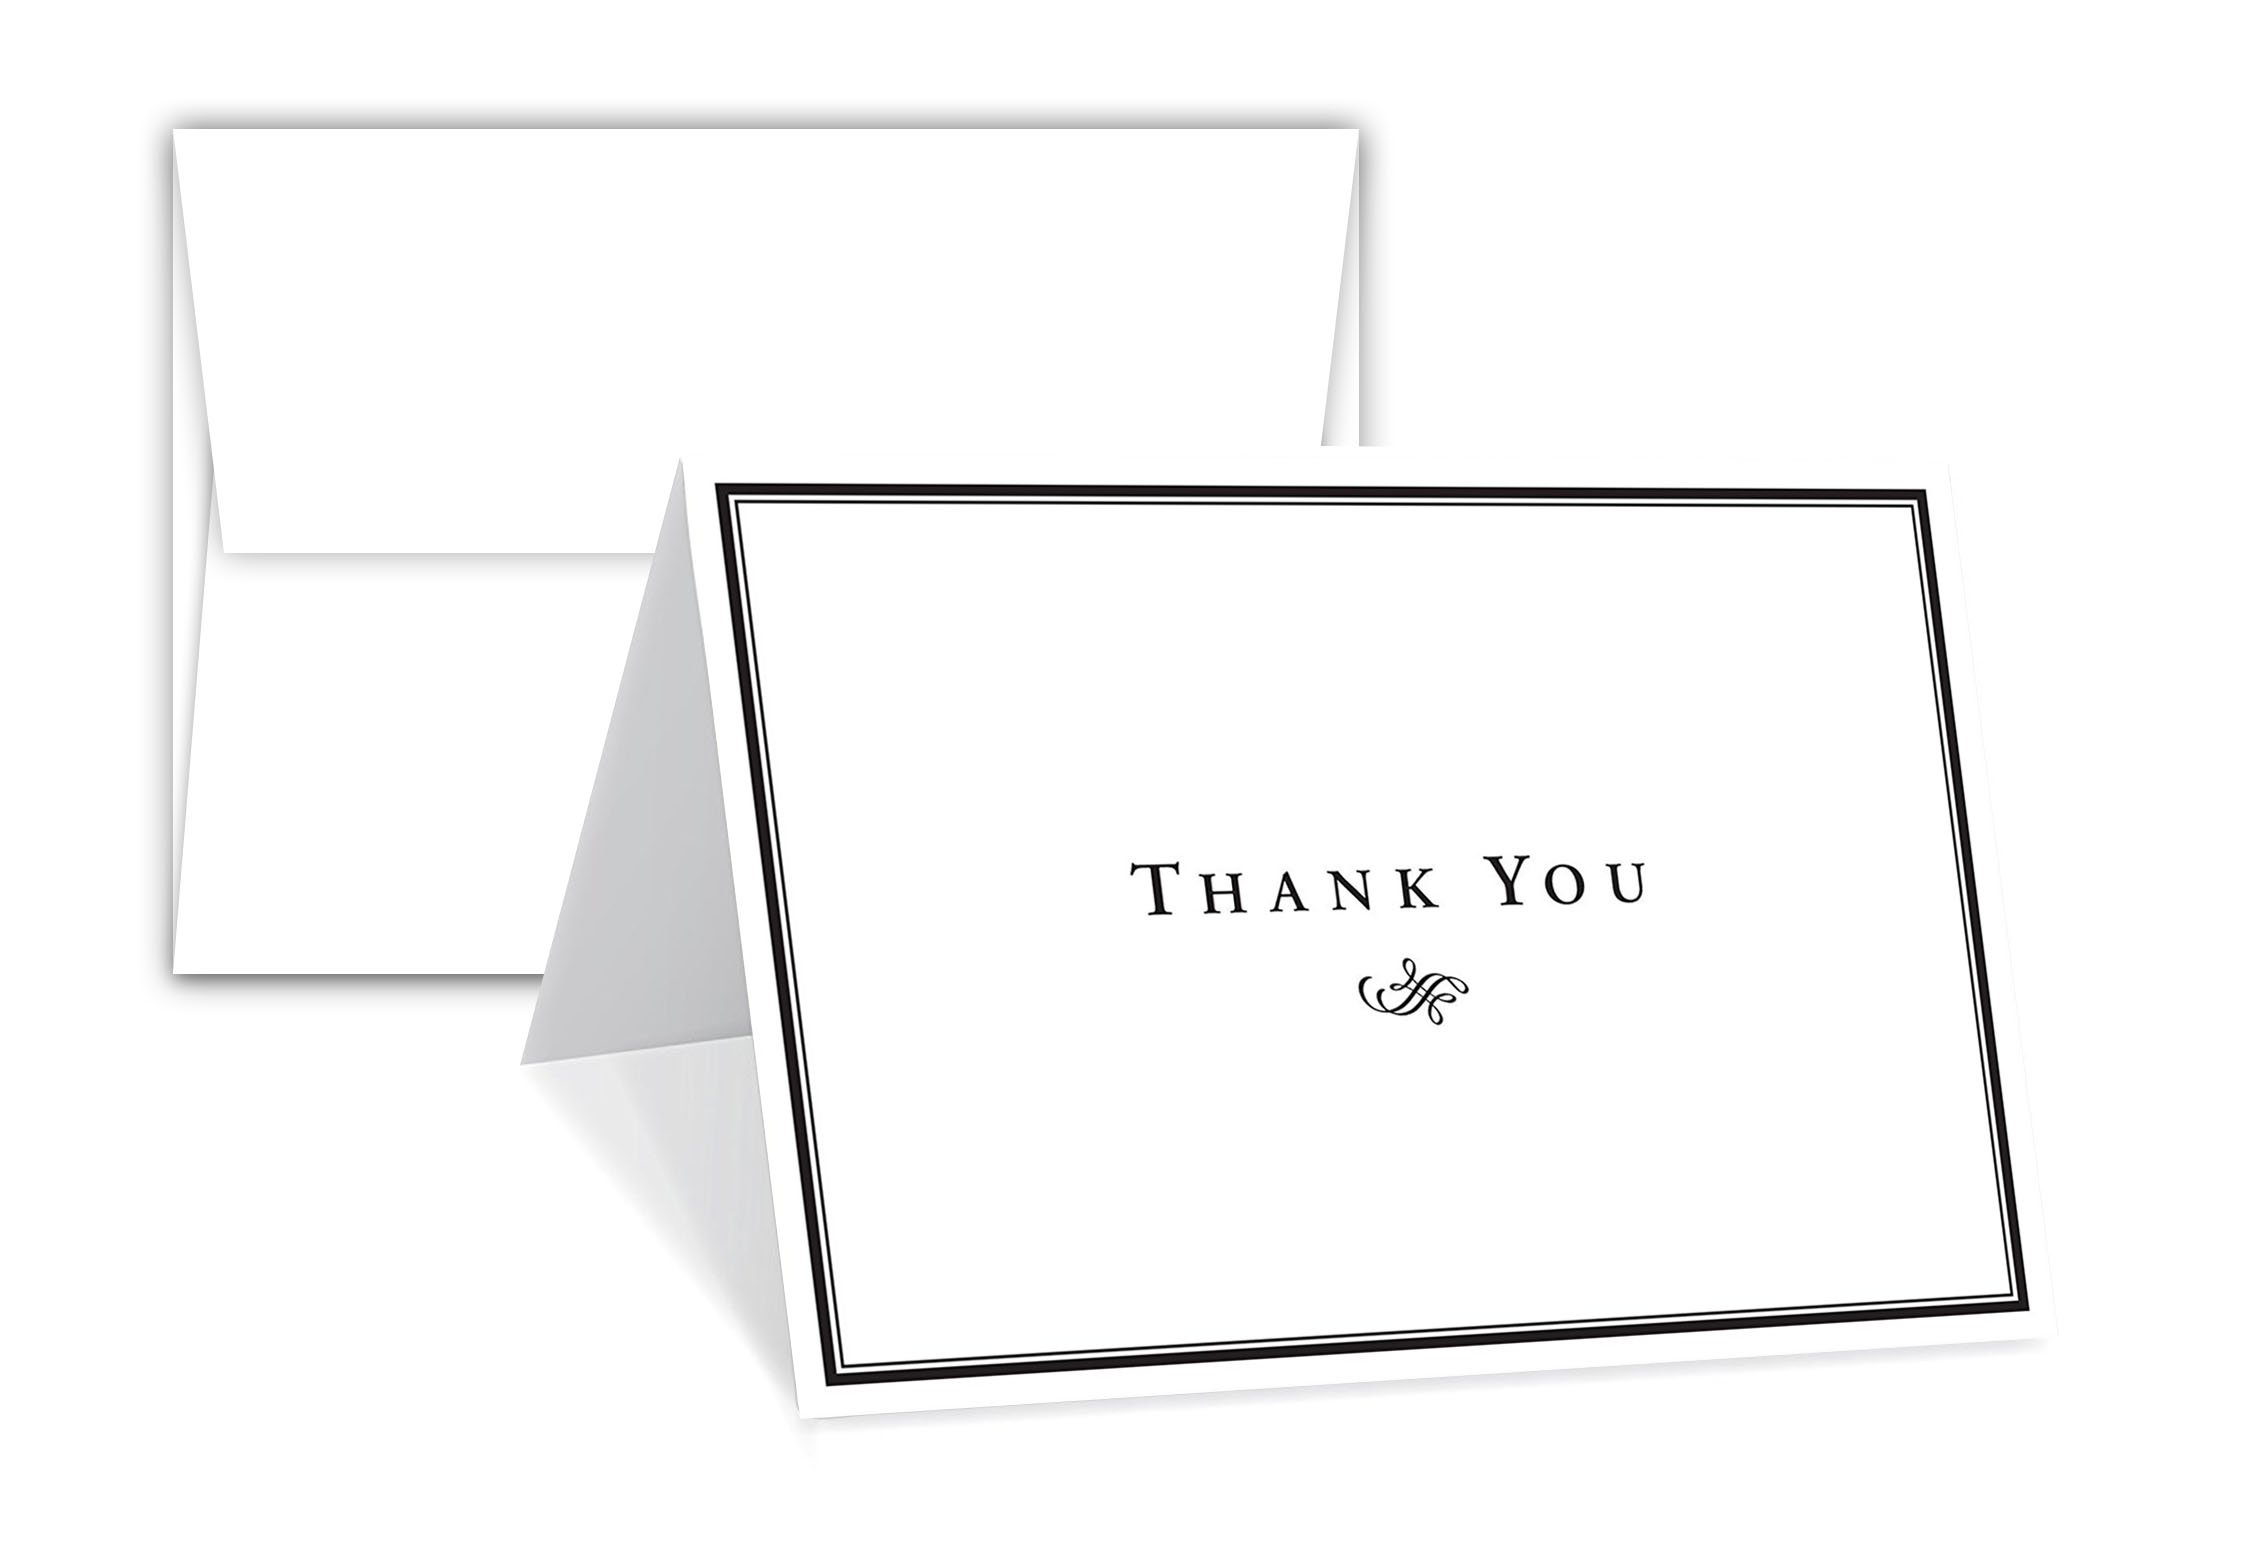 Superfine Printing Inc 4.5 x 6 Inch 25 Thank You Greeting Cards with 25 Envelopes